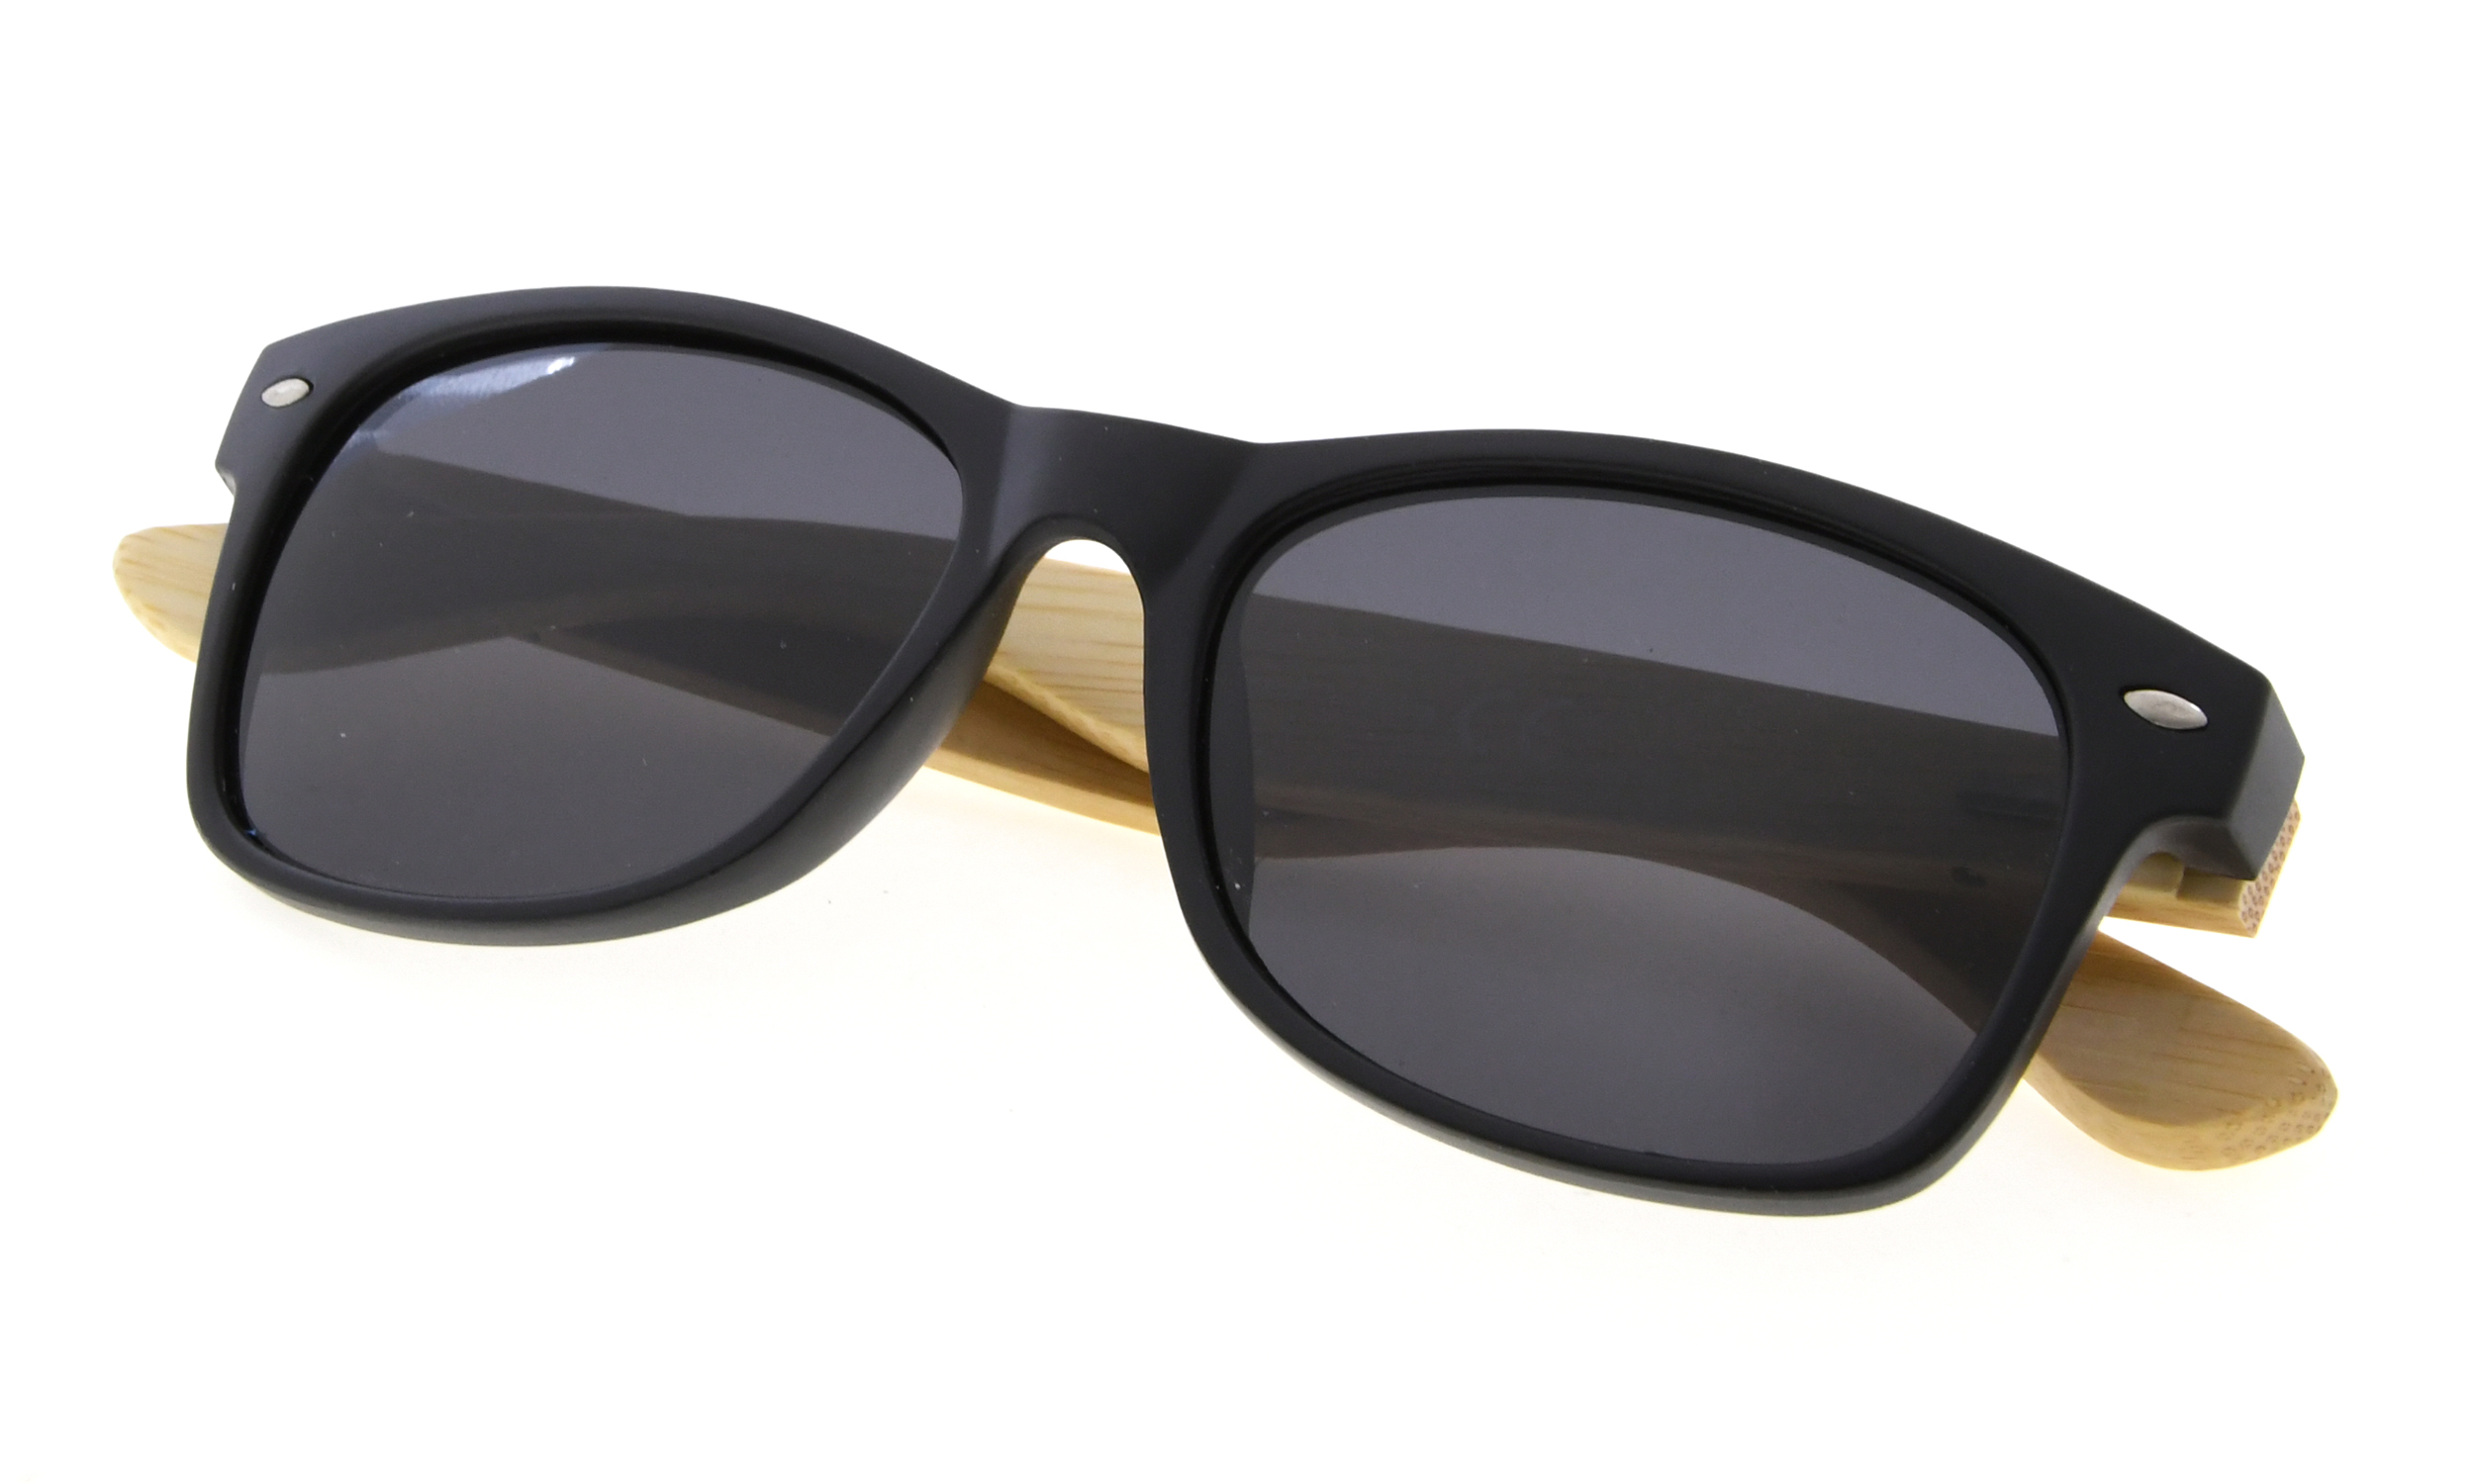 3060488211 Polarized Sunglasses Quality Spring Hinges Bamboo Wood Arms Women R093- Polarized Item NO  R093-Polarized